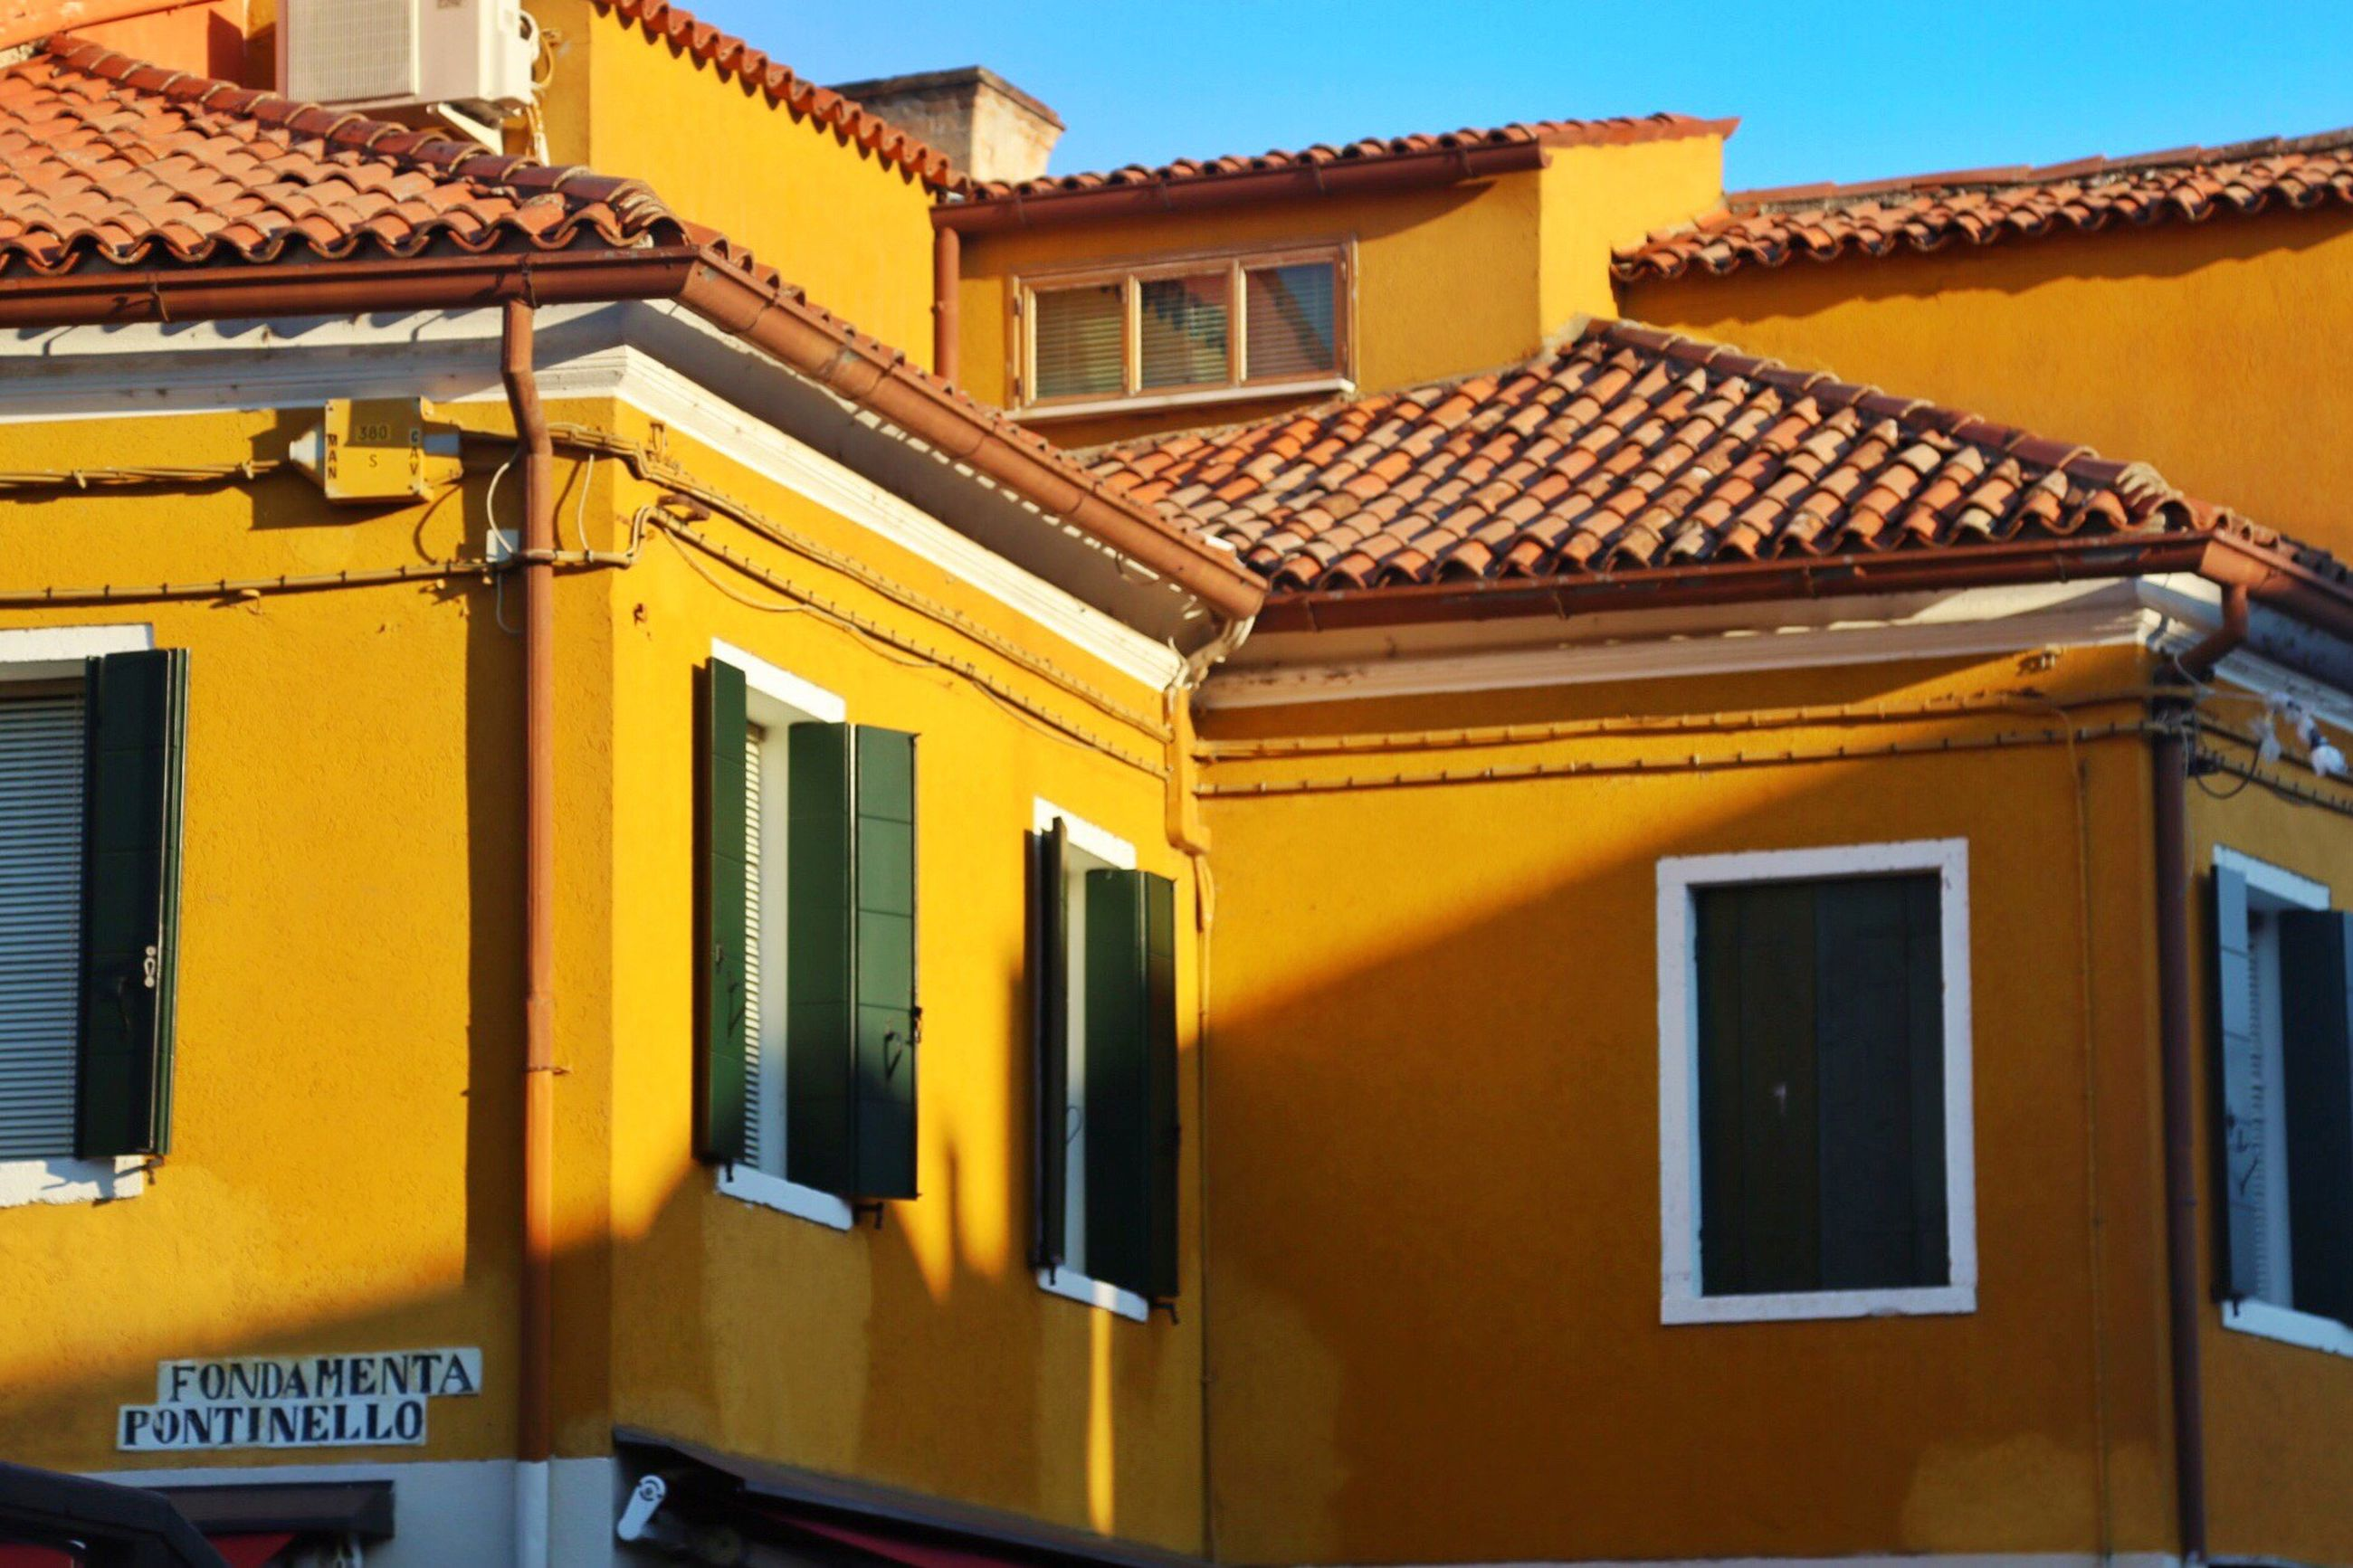 building exterior, architecture, built structure, yellow, window, house, roof, residential structure, residential building, day, sky, exterior, outdoors, high section, town, no people, city life